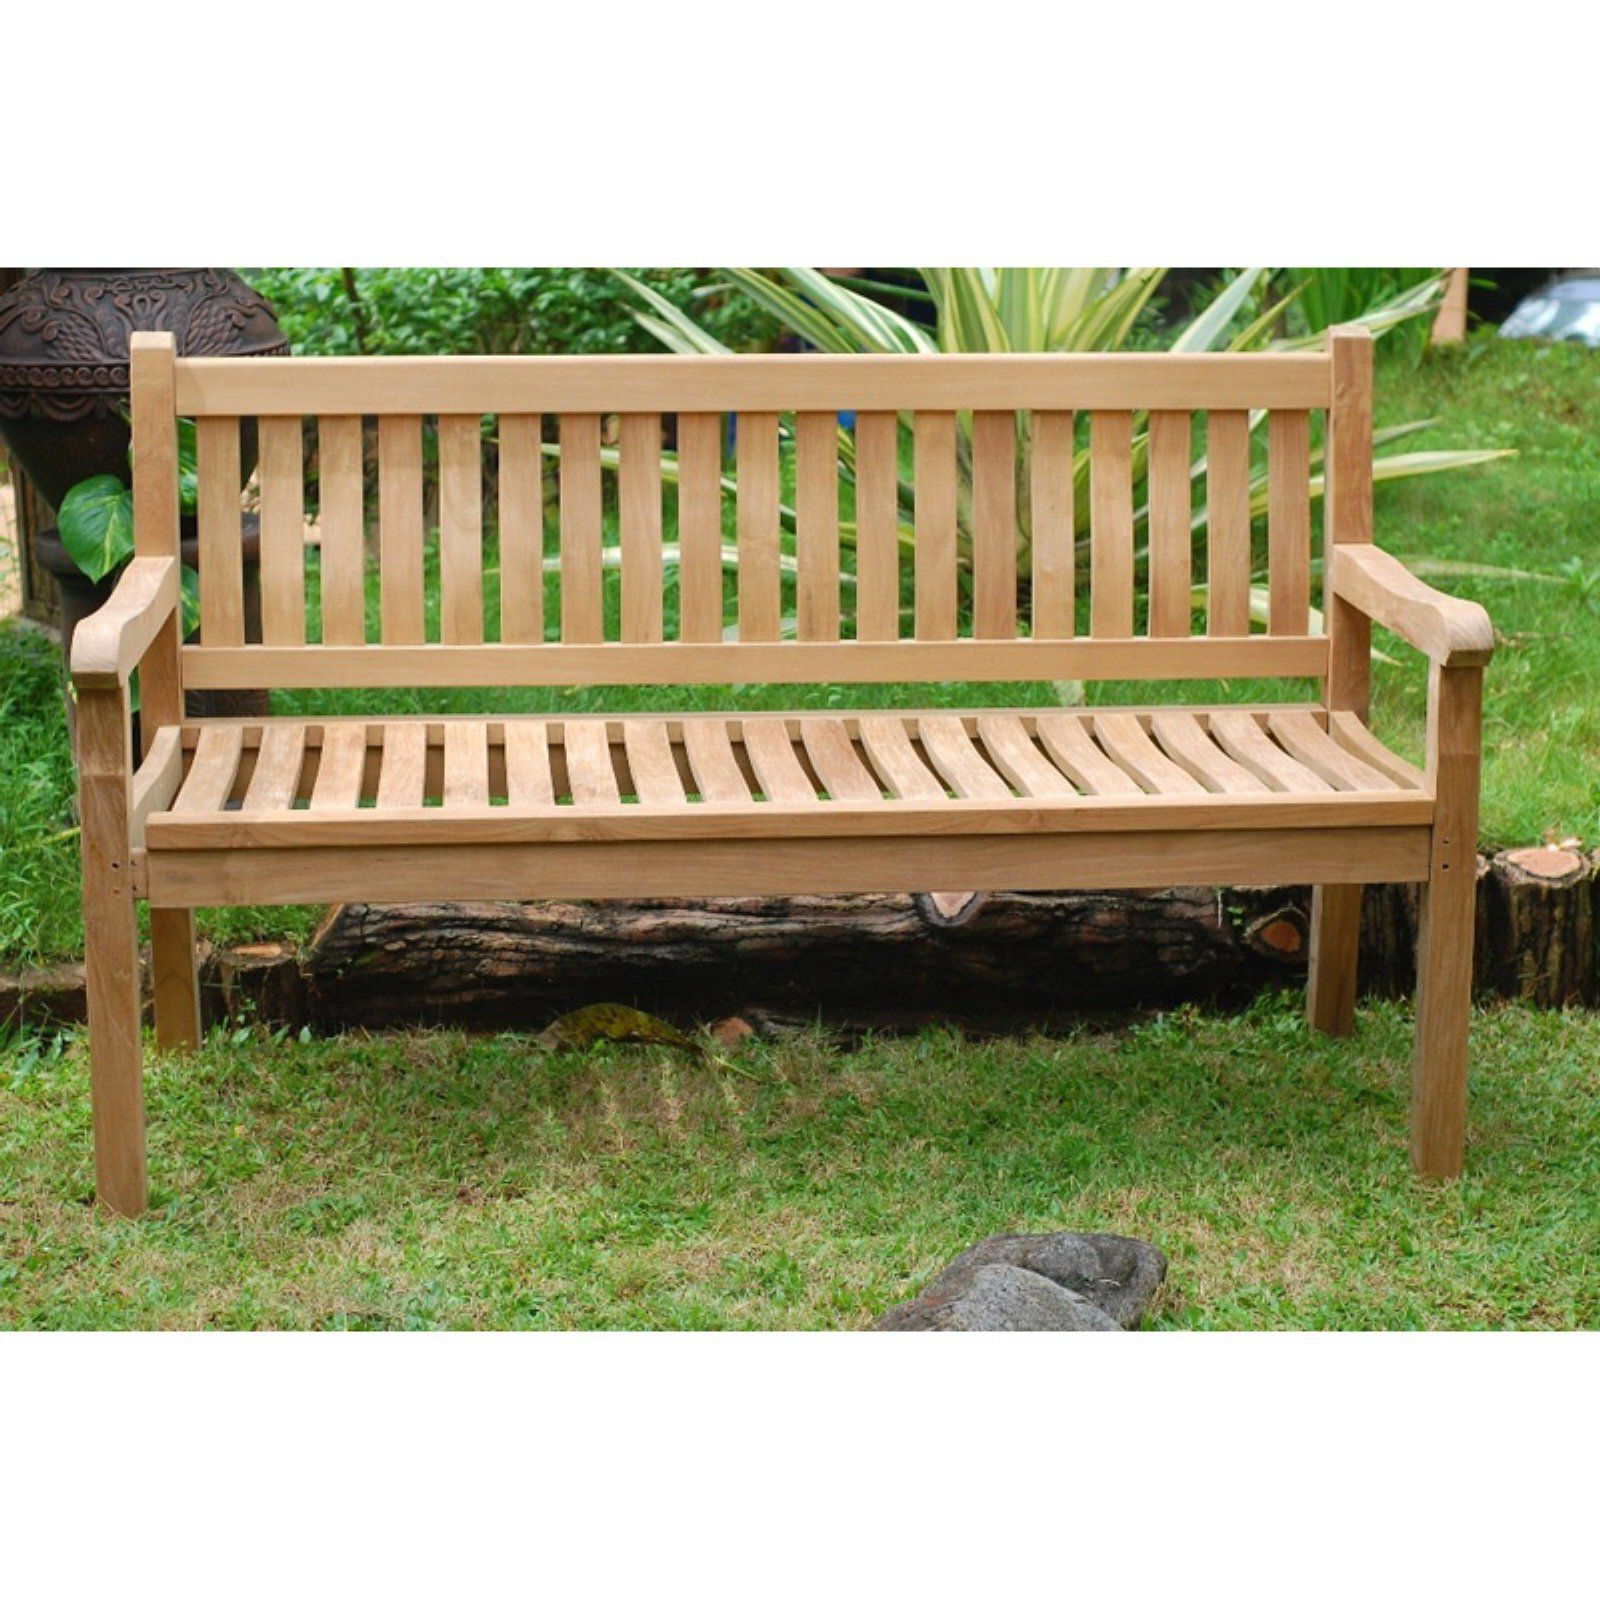 Hampstead Teak Garden Benches For Best And Newest Windsor Teak Furniture Outdoor Bench With Contoured Seat (View 5 of 30)